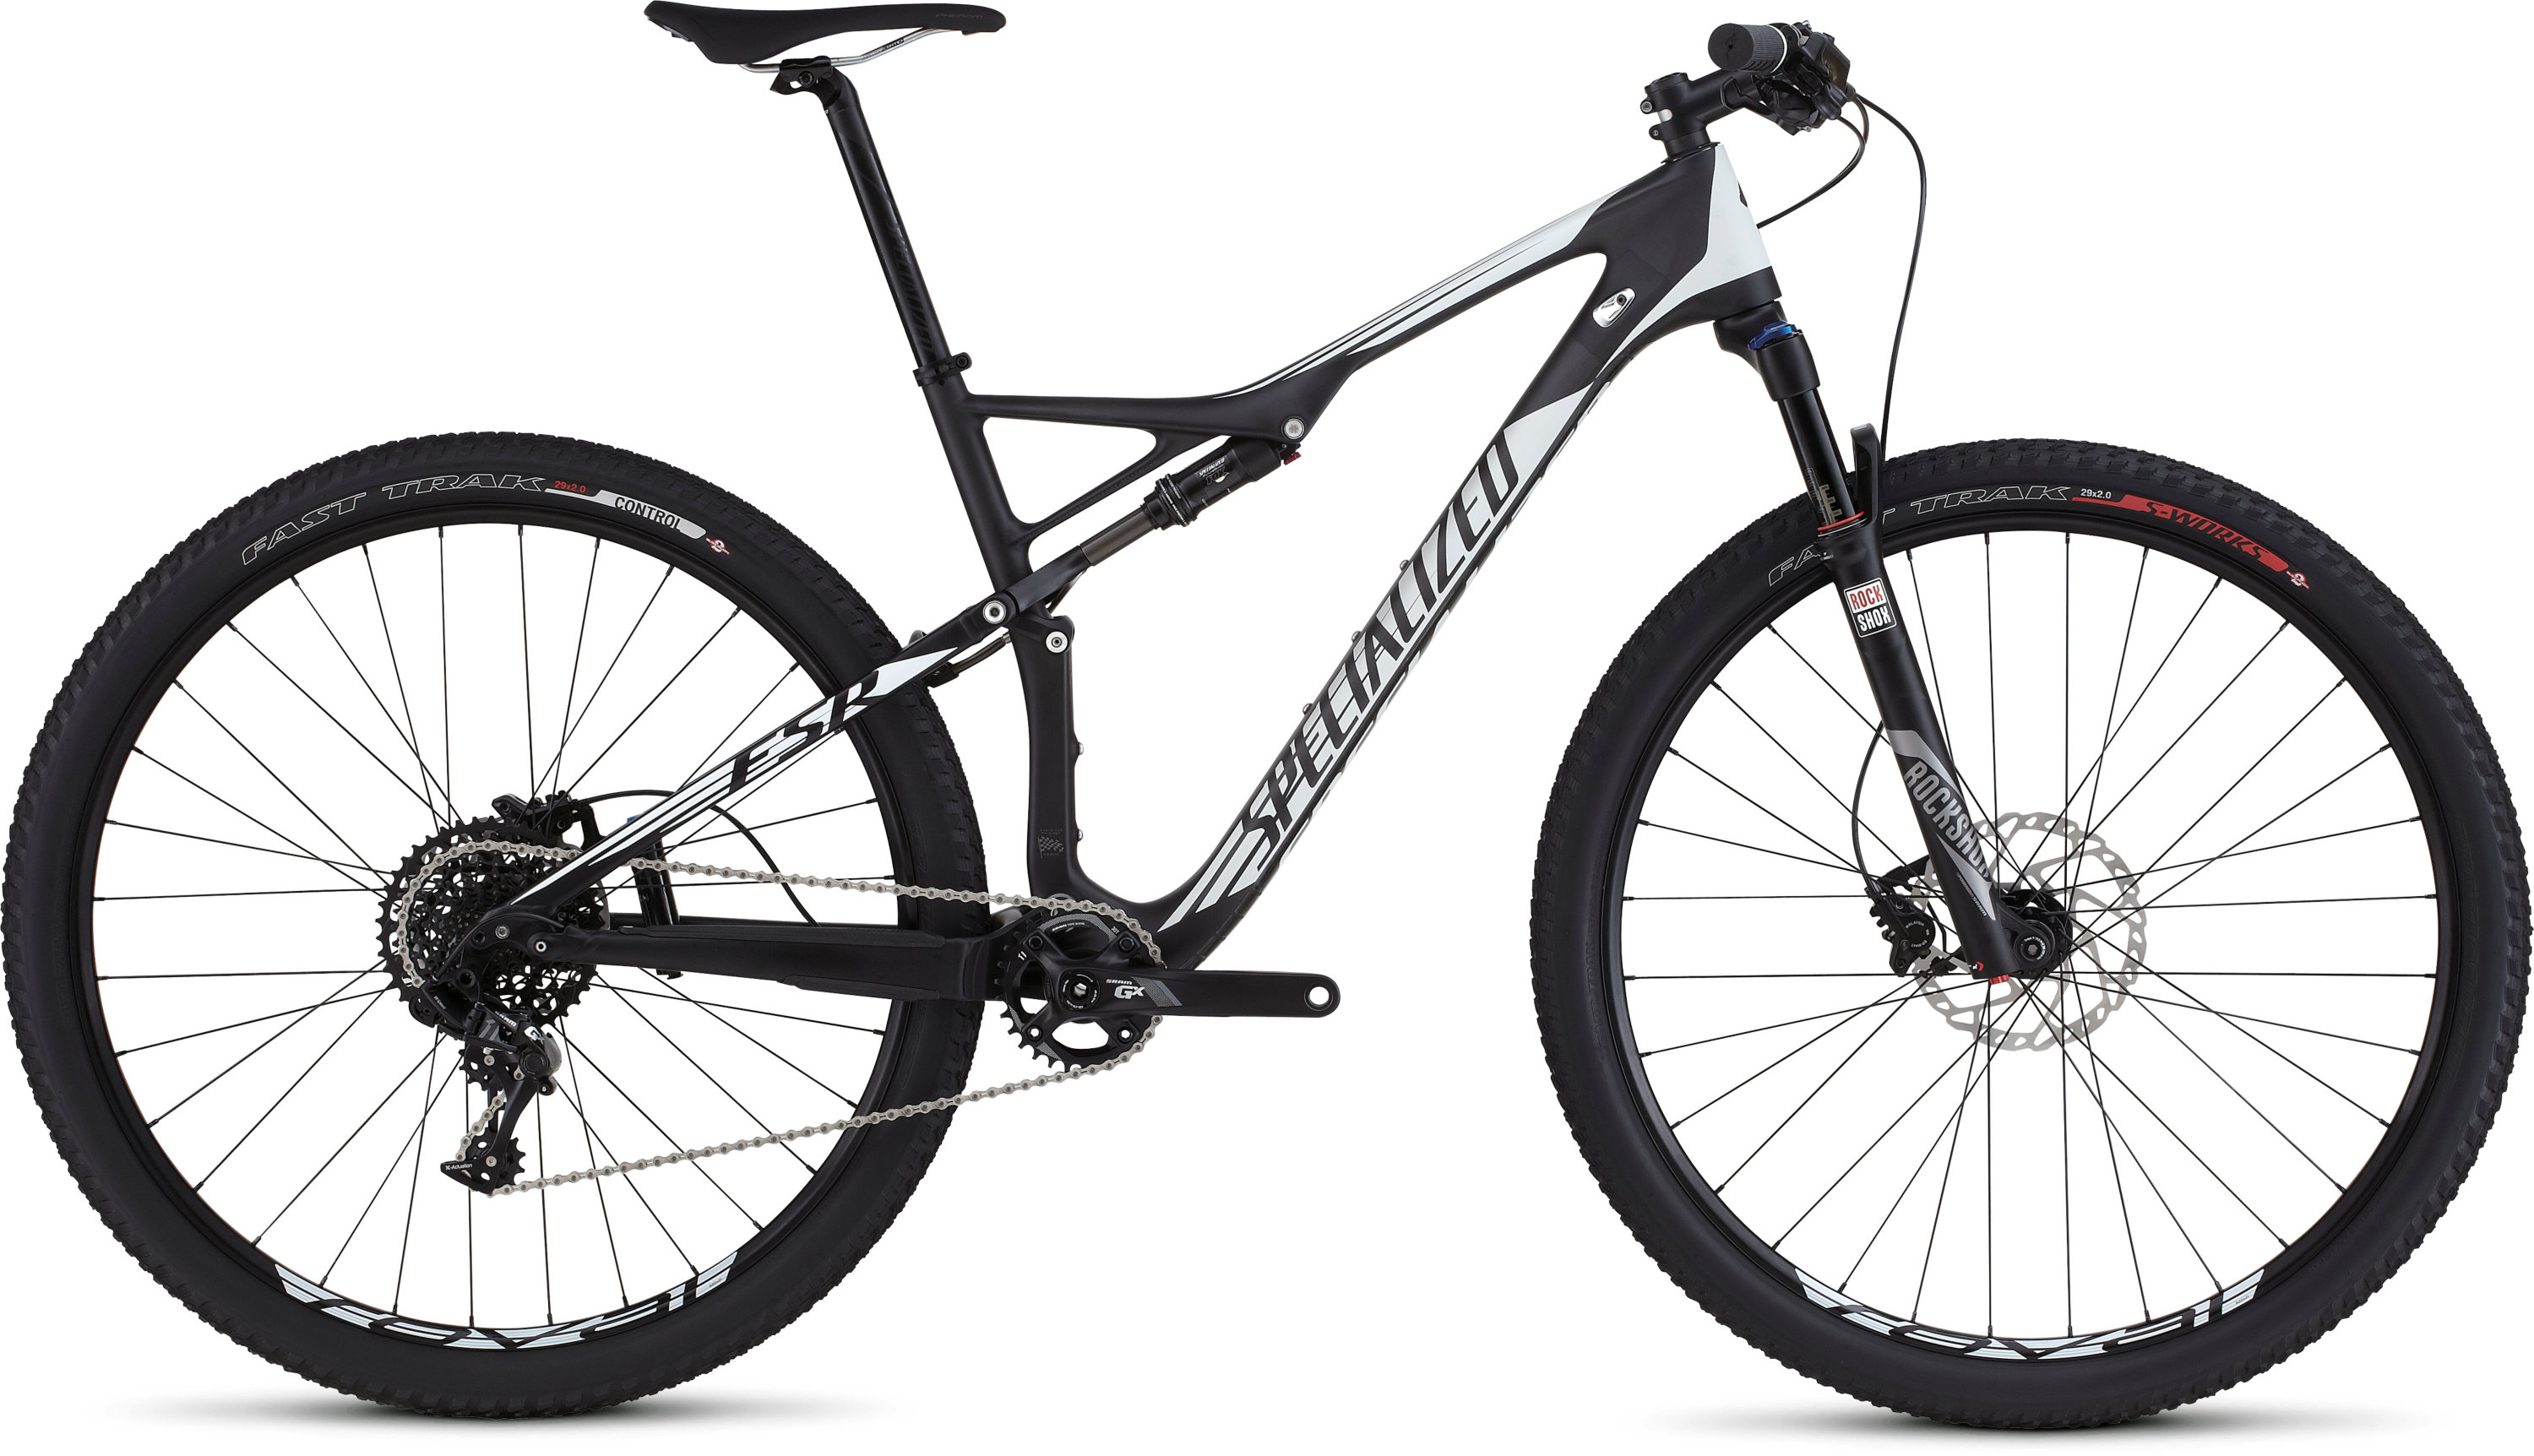 SPECIALIZED EPIC FSR COMP CARBON WC 29 CARB/WHT L - SPECIALIZED EPIC FSR COMP CARBON WC 29 CARB/WHT L